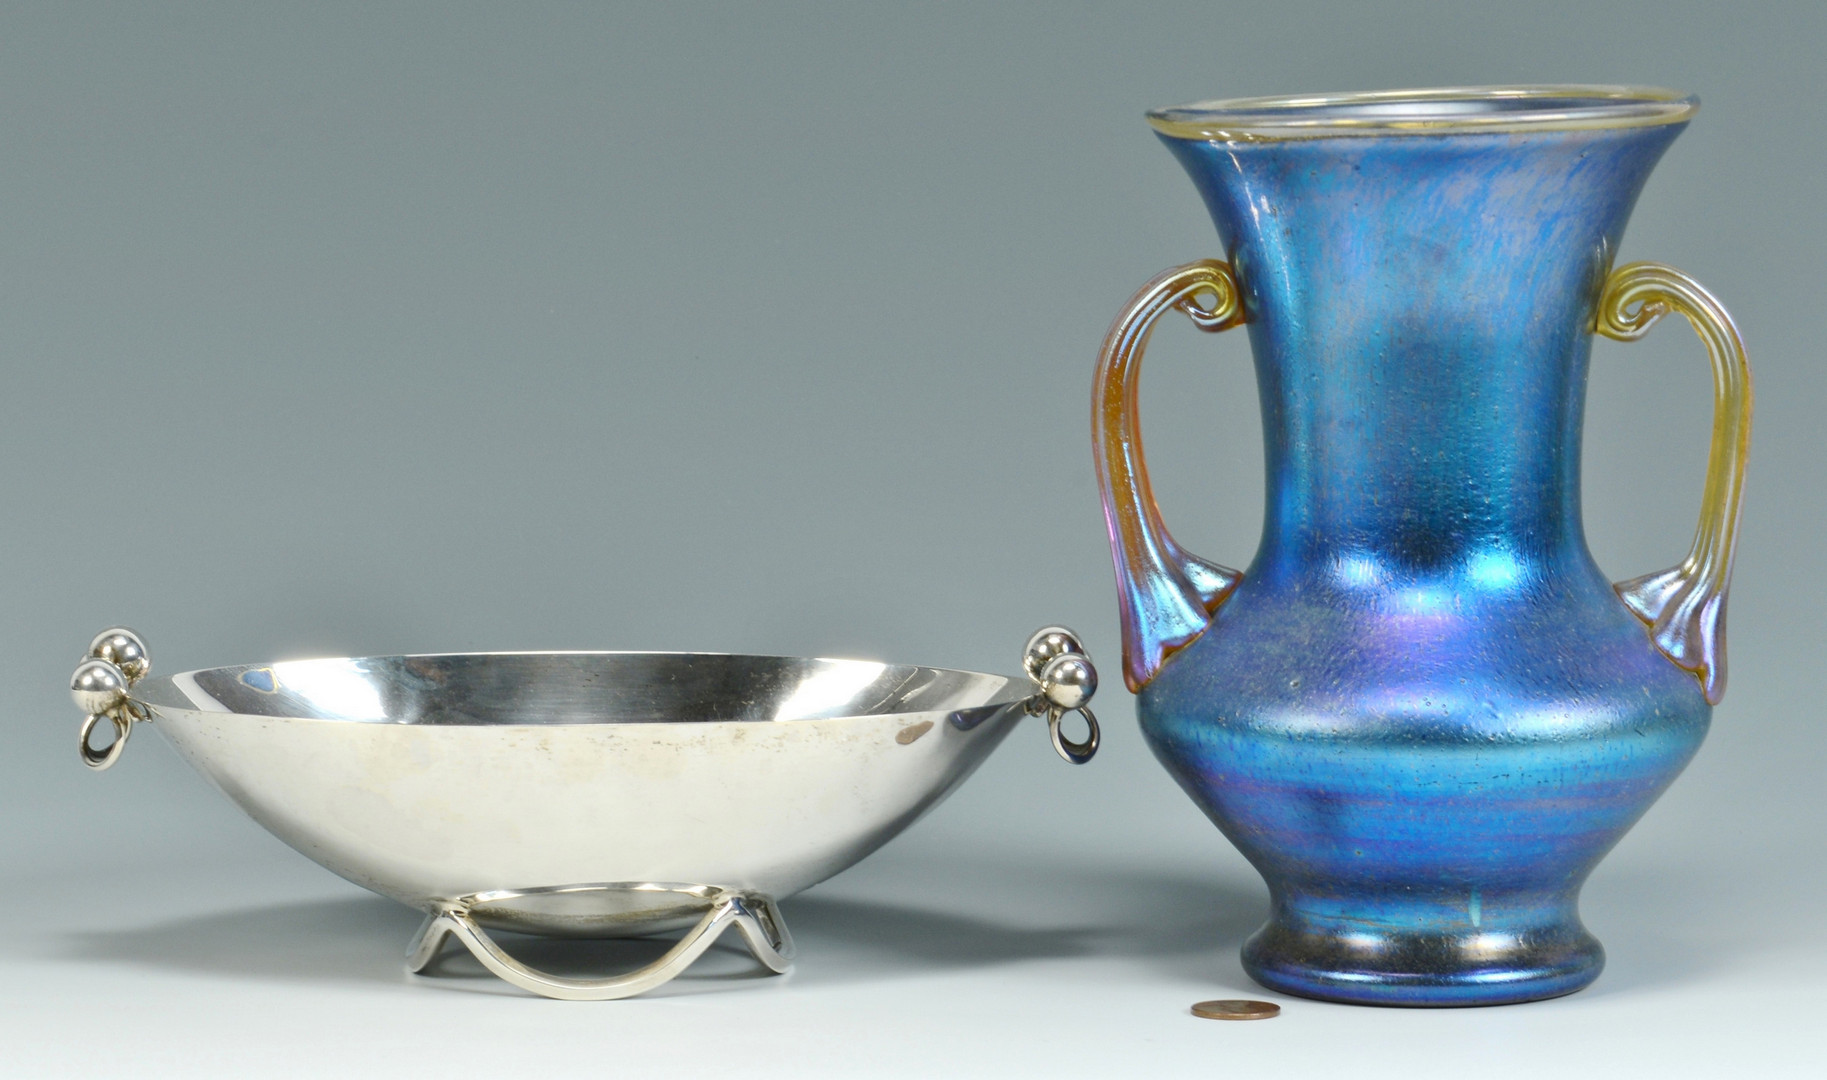 Lot 582: Sciarrotta Silver Bowl & Czech Art Glass Vase